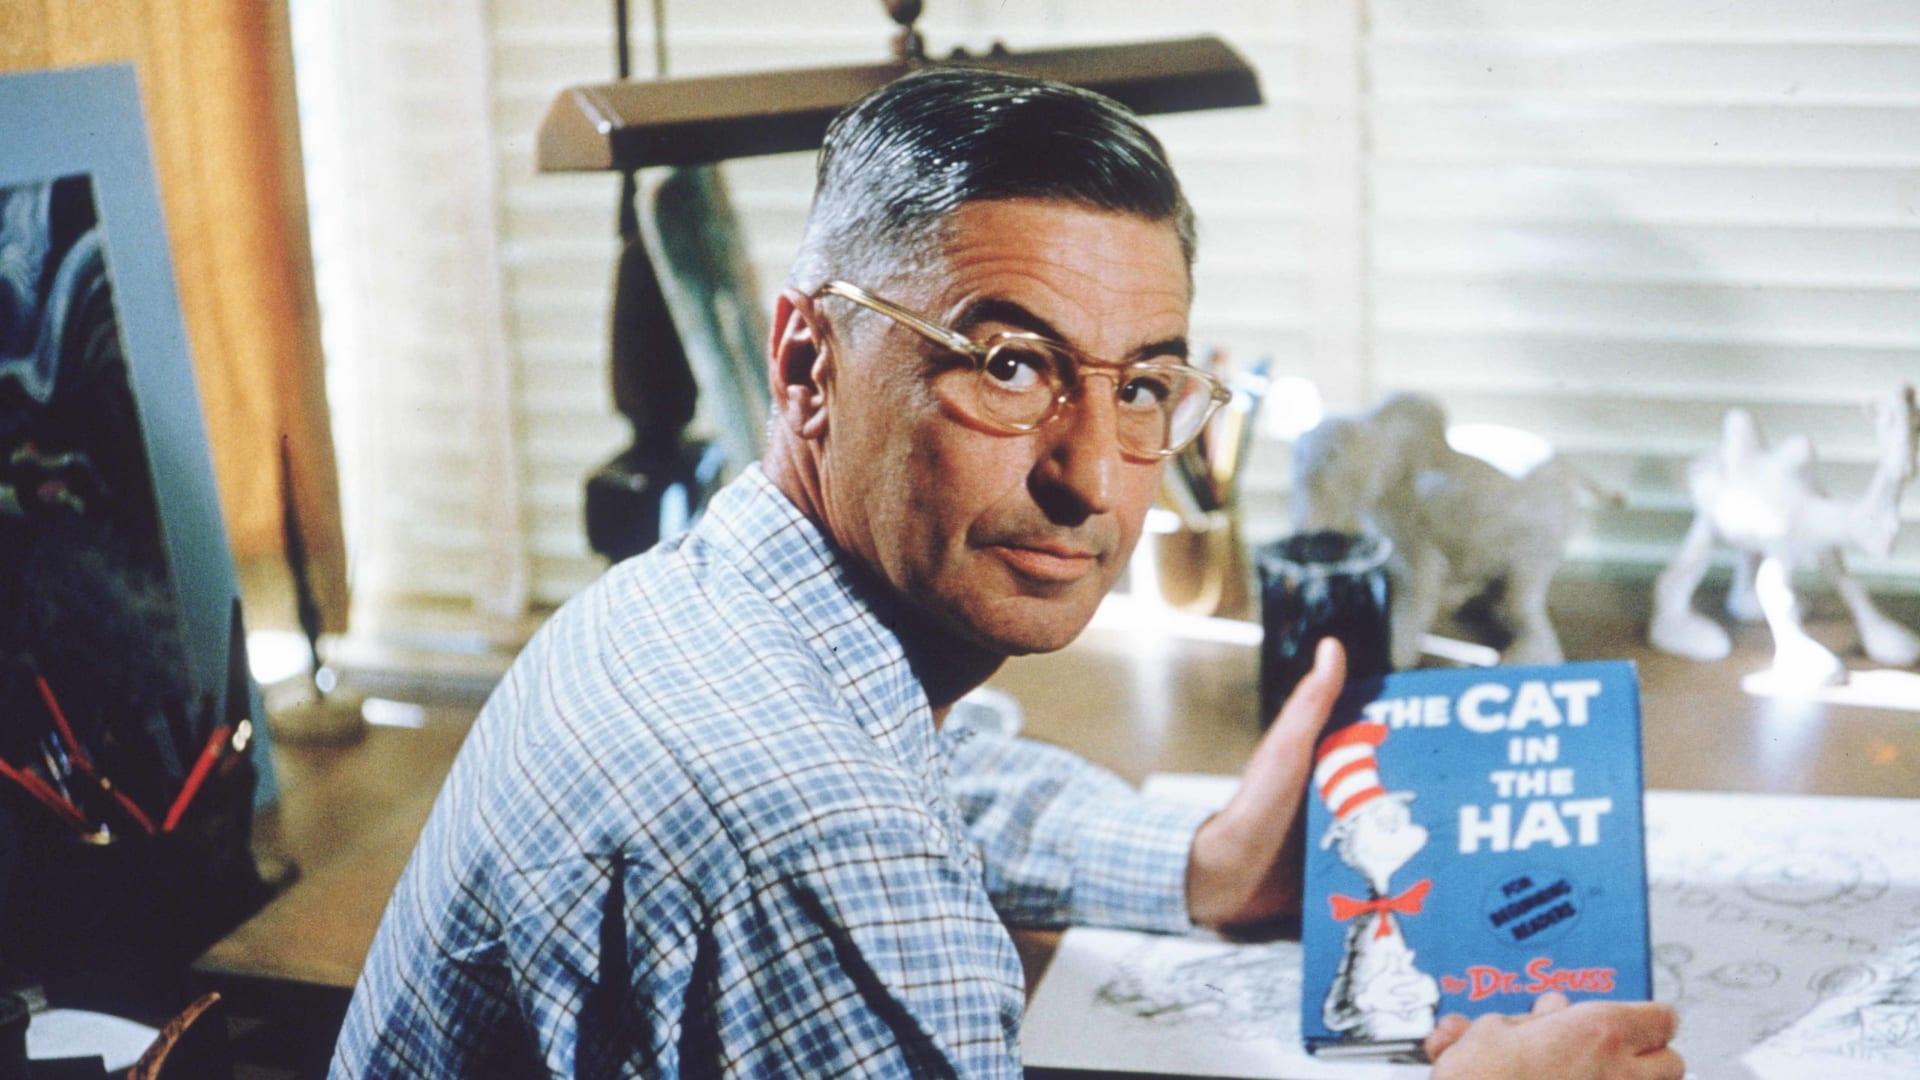 The late American author and illustrator Theodor Seuss Geisel (a.k.a. Dr. Seuss) at his drafting table in his La Jolla, California, home office in 1957.